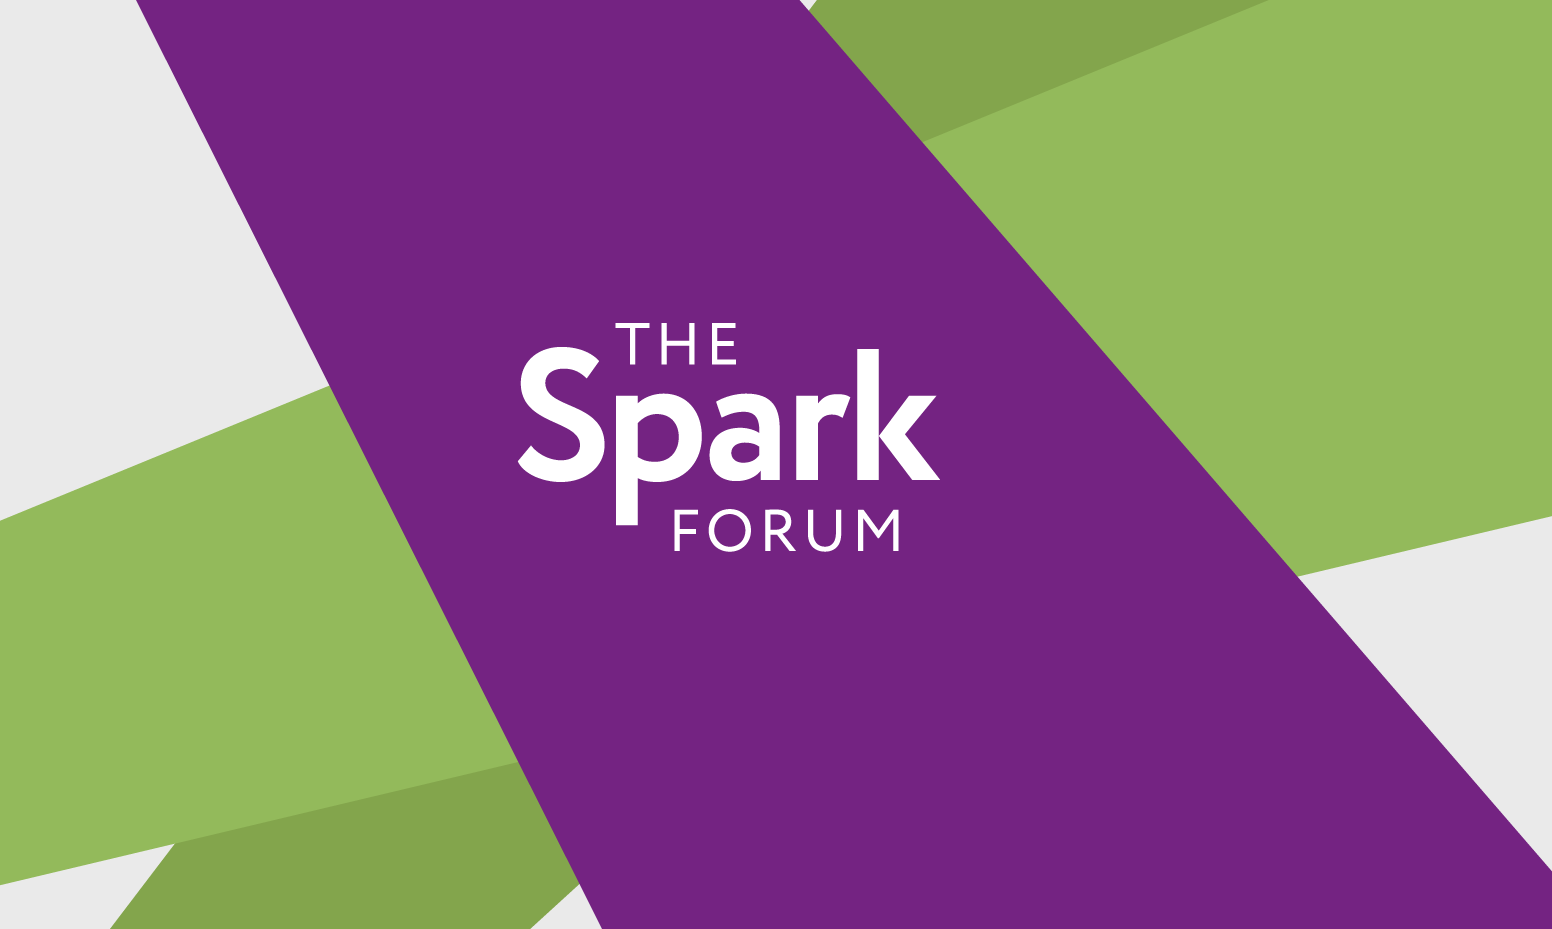 Inspiration and connection at the first Spark Forum event - Bristol